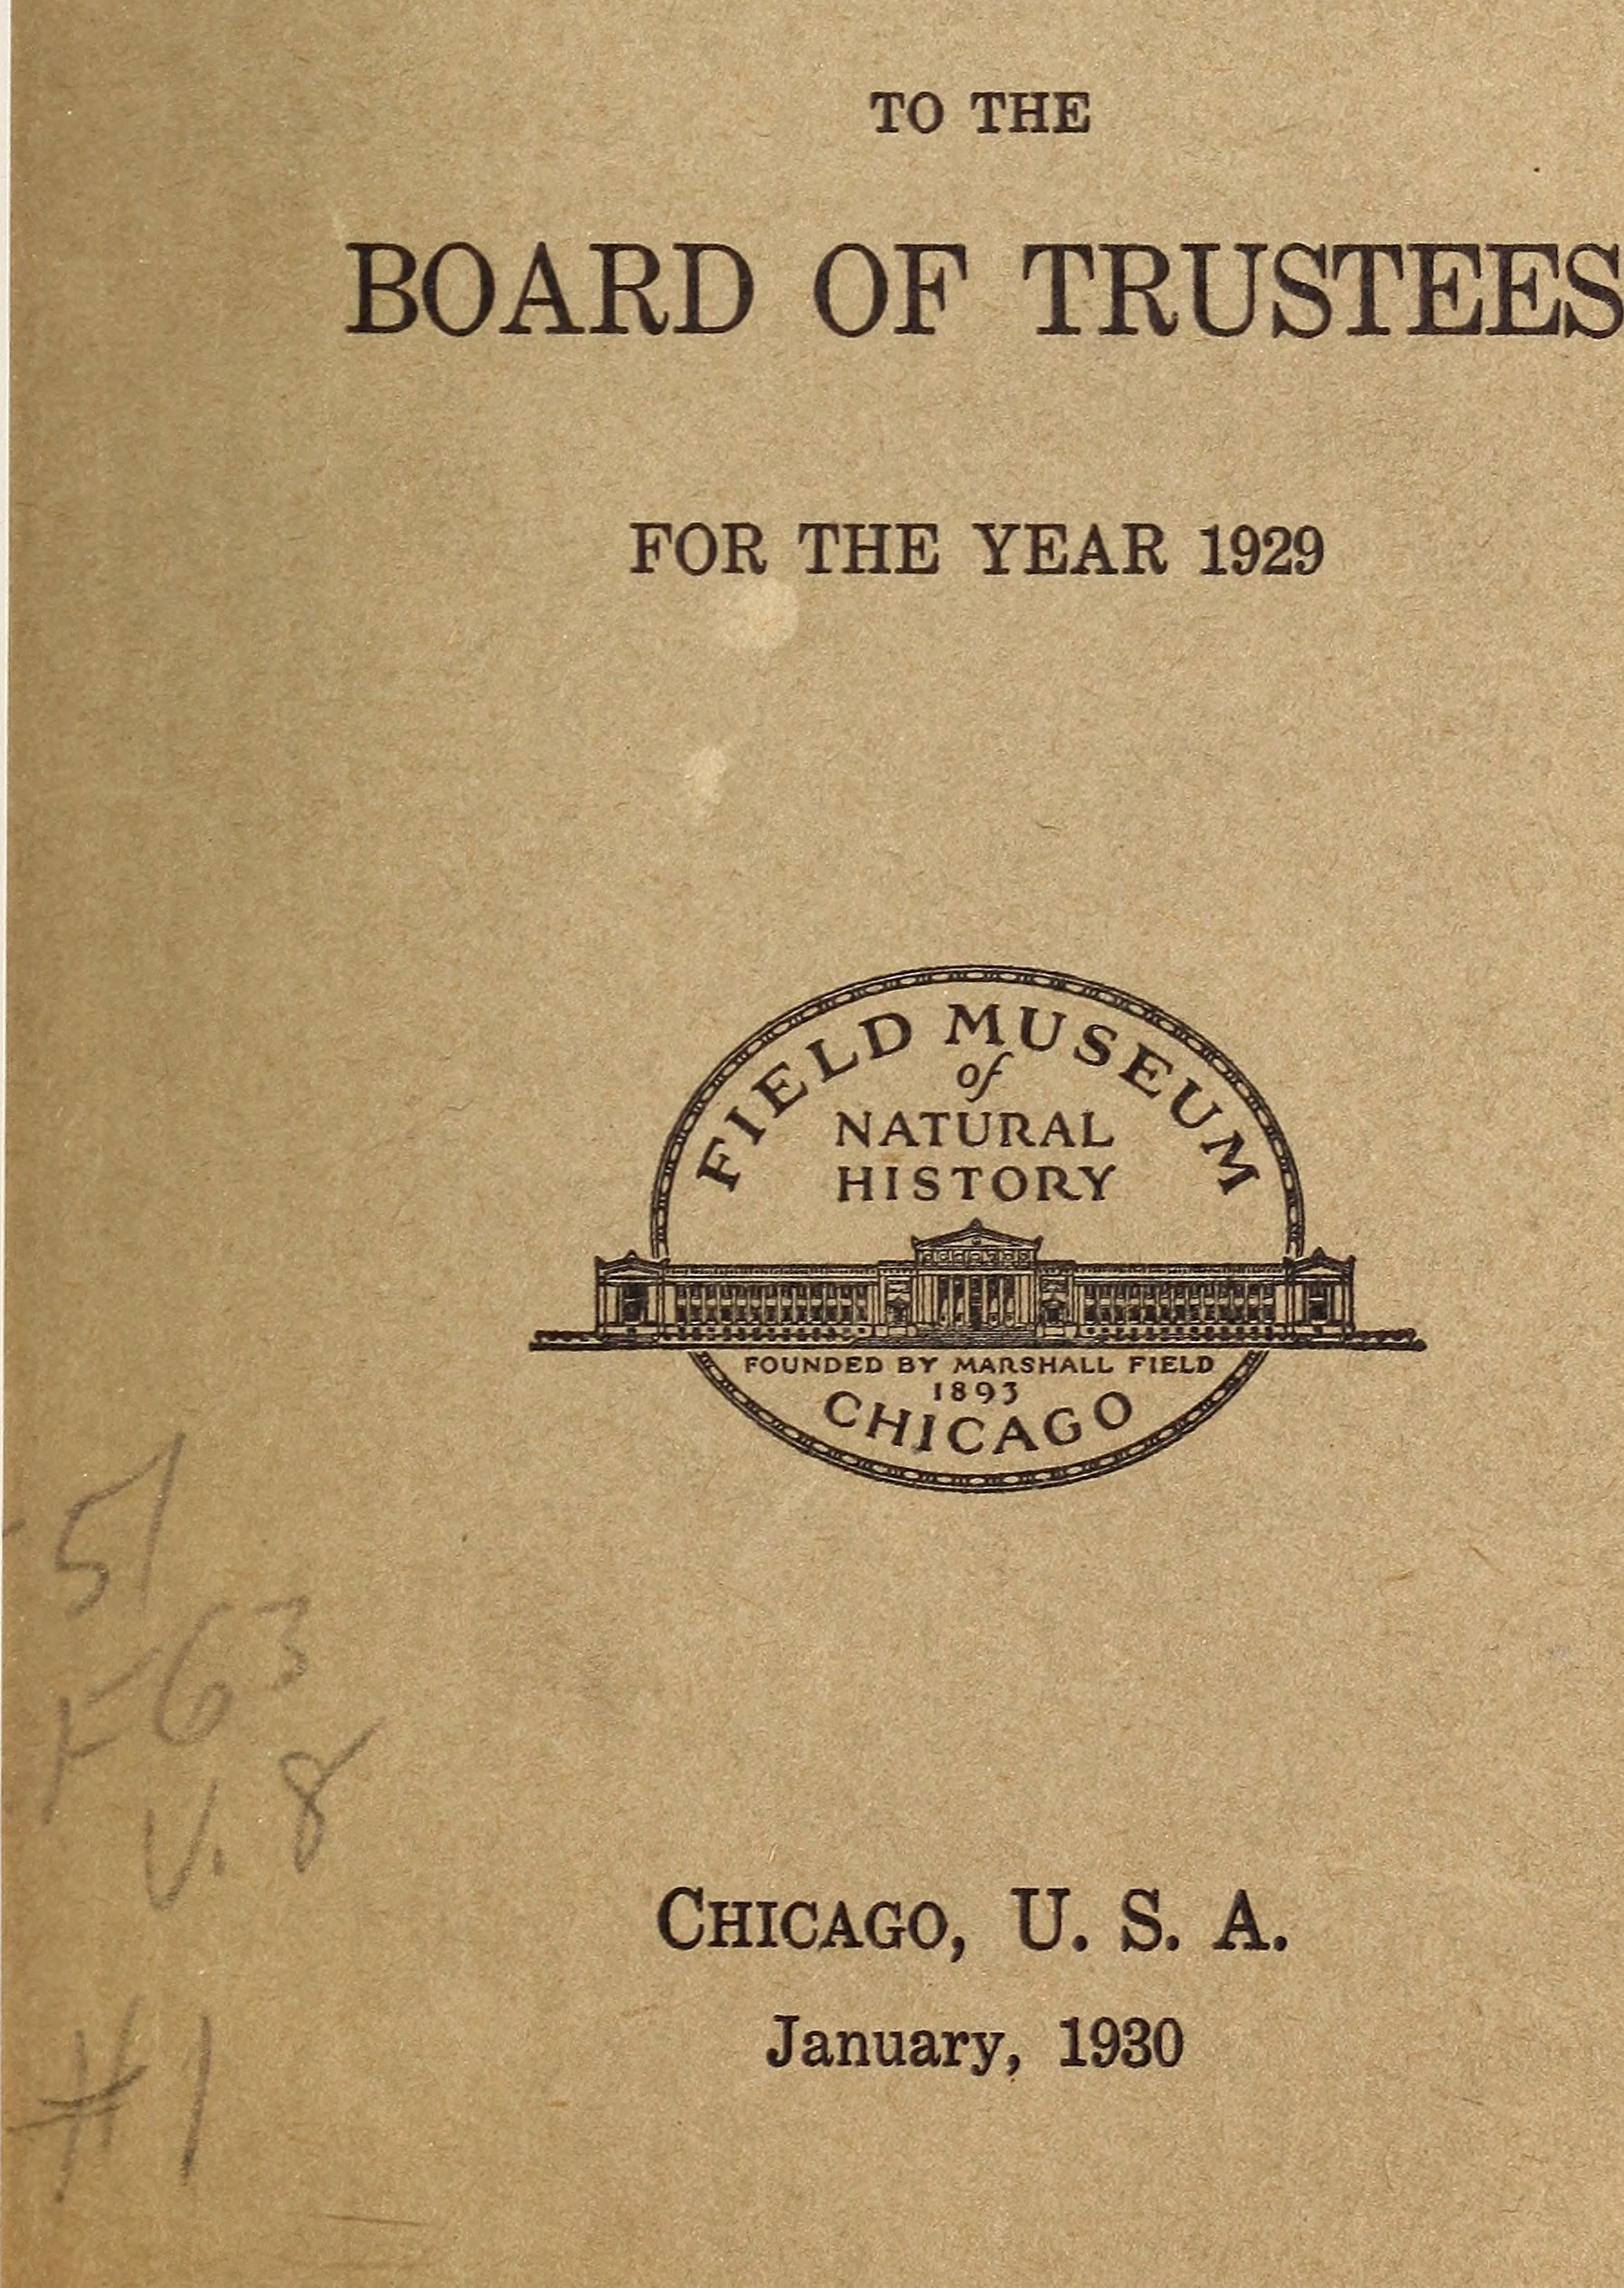 File:Annual report of the Director to the Board of Trustees